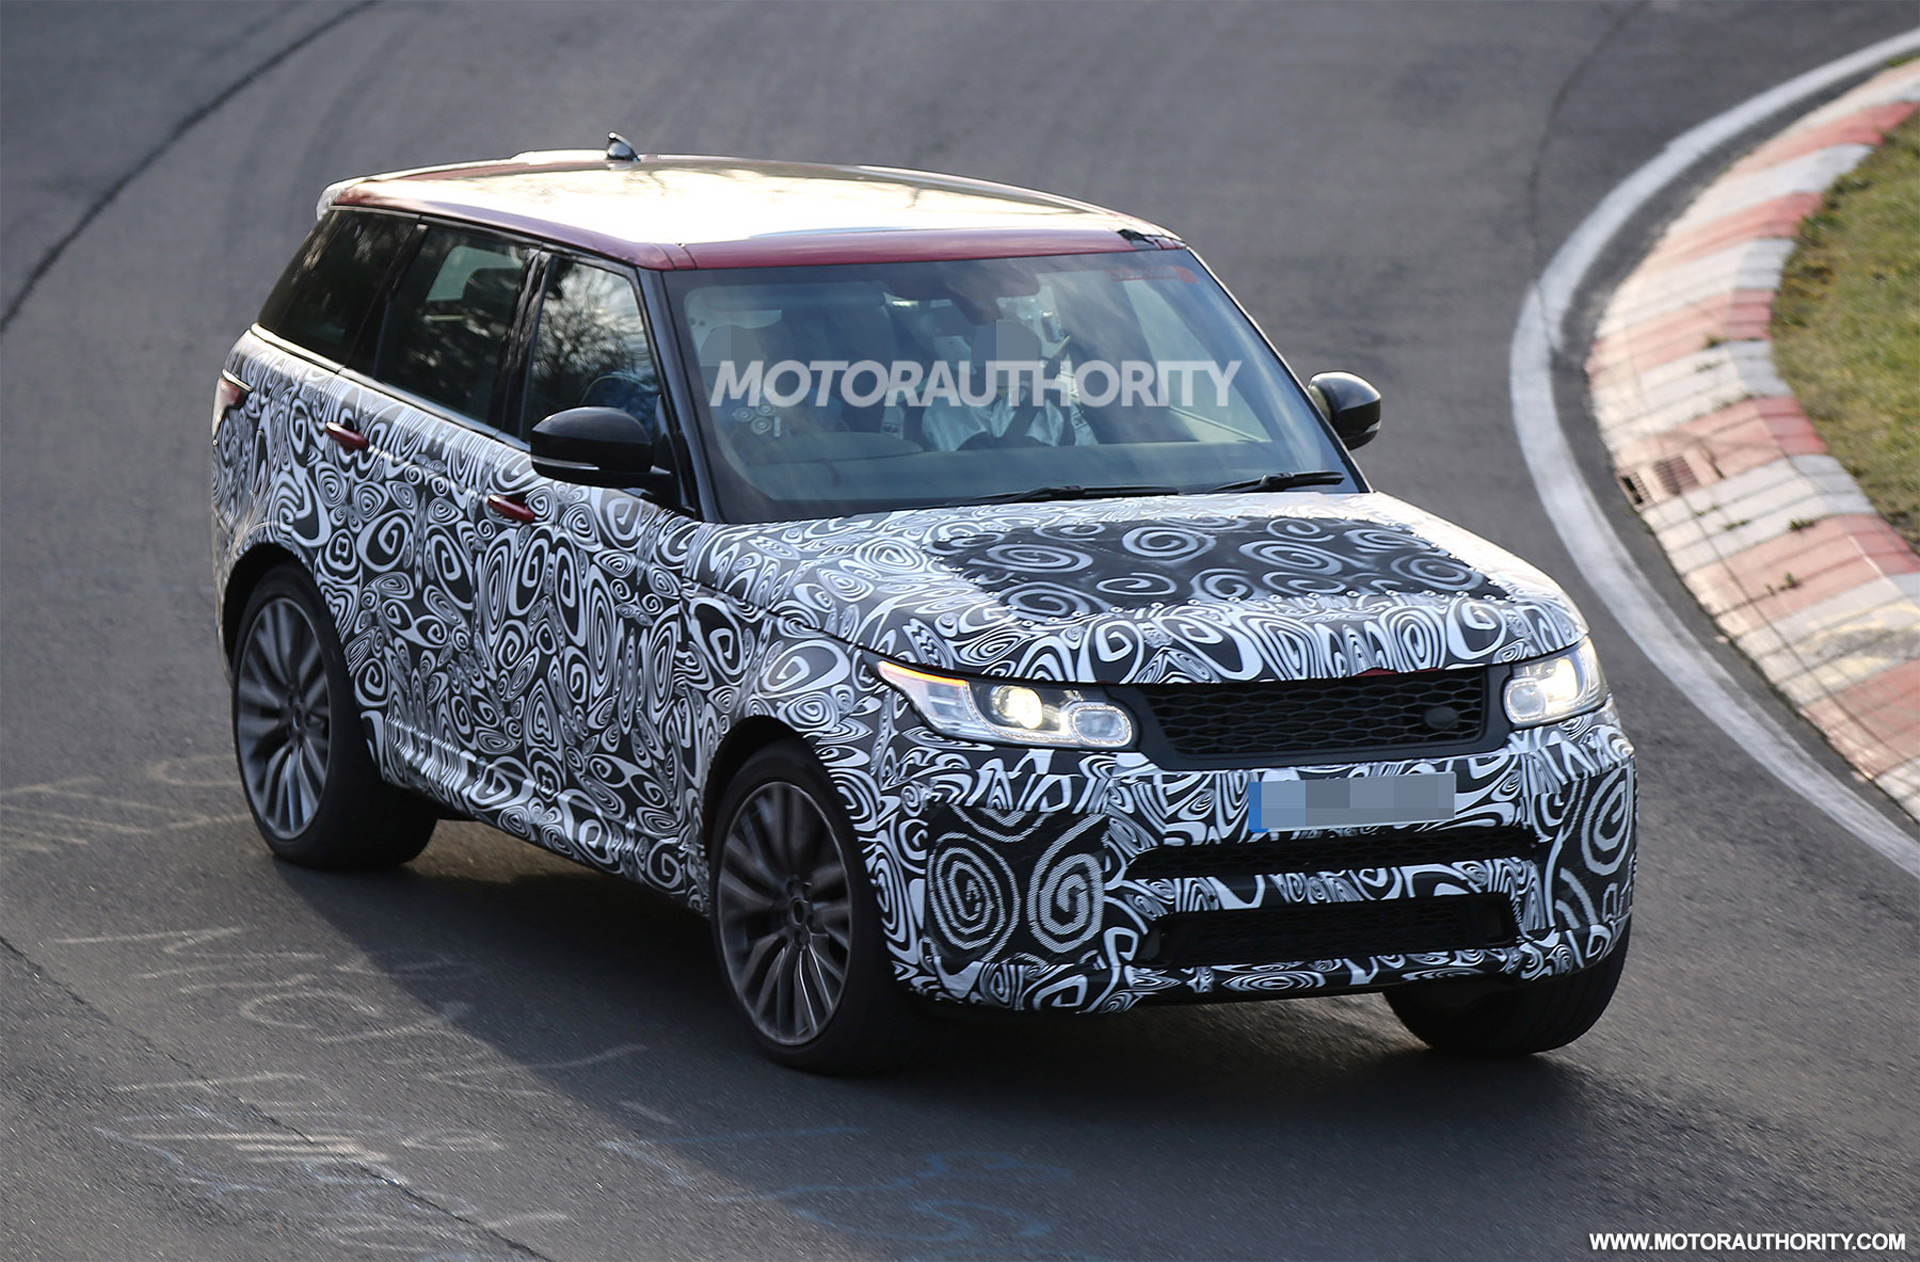 ... SVR Range Rover Sport besides 2016 Audi Q7 Interior. on acura car show